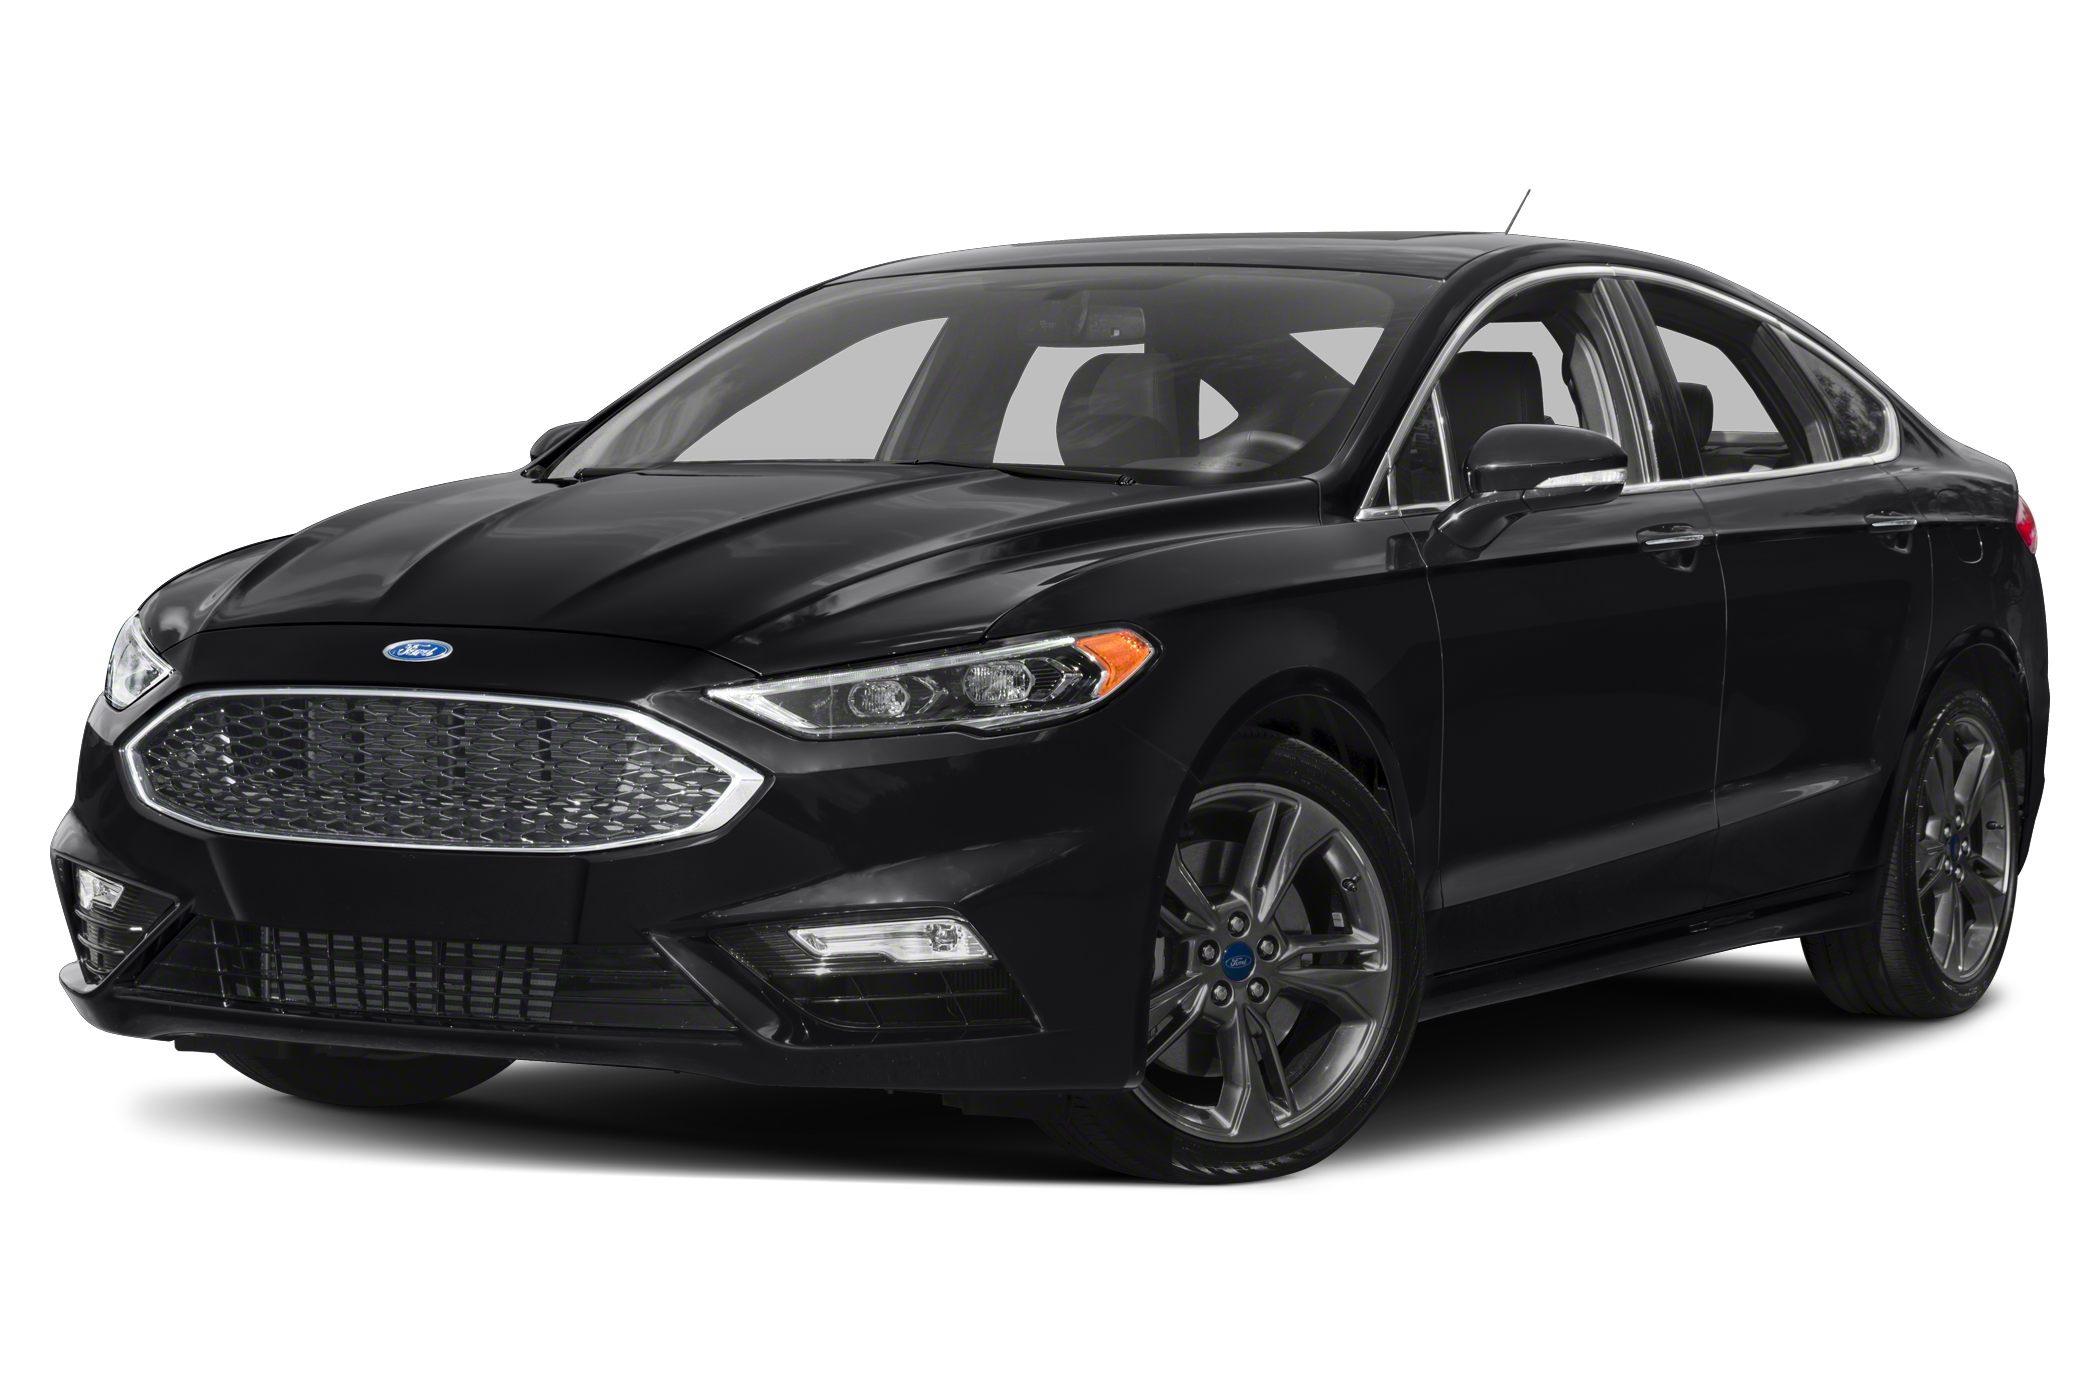 Black Ford Fusion >> Ford Fusion News, Photos and Buying Information - Autoblog